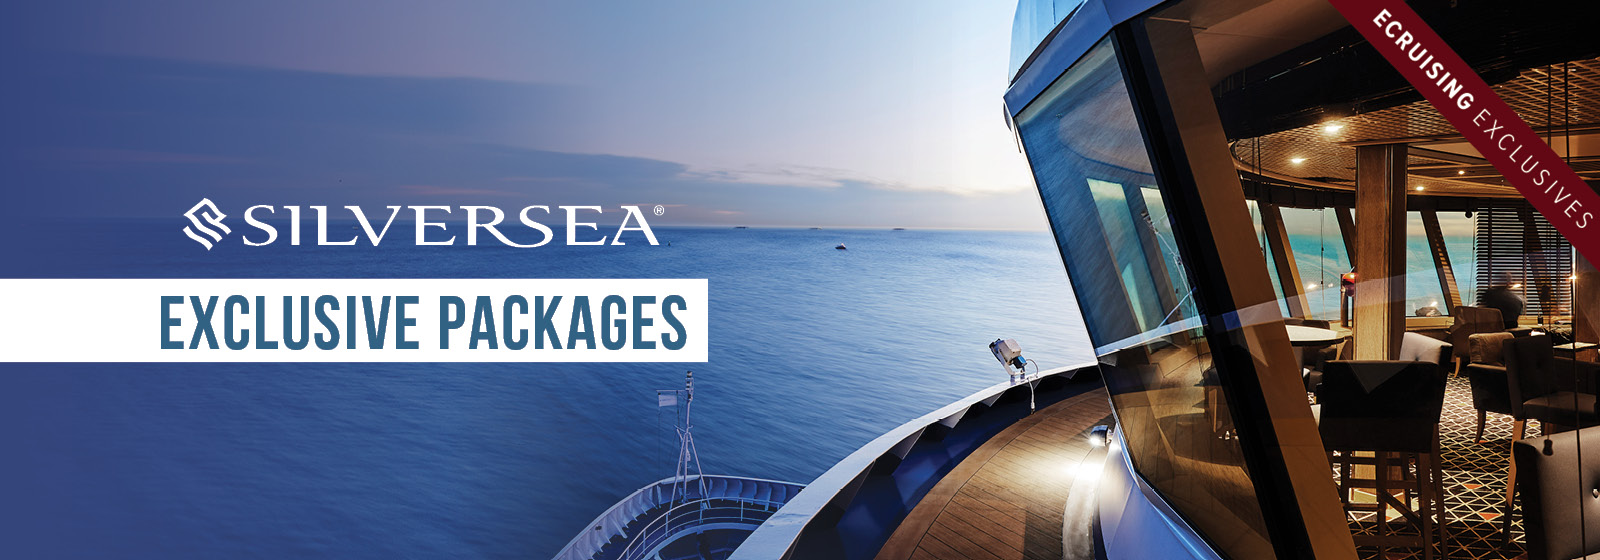 Silversea Exclusive Packages1